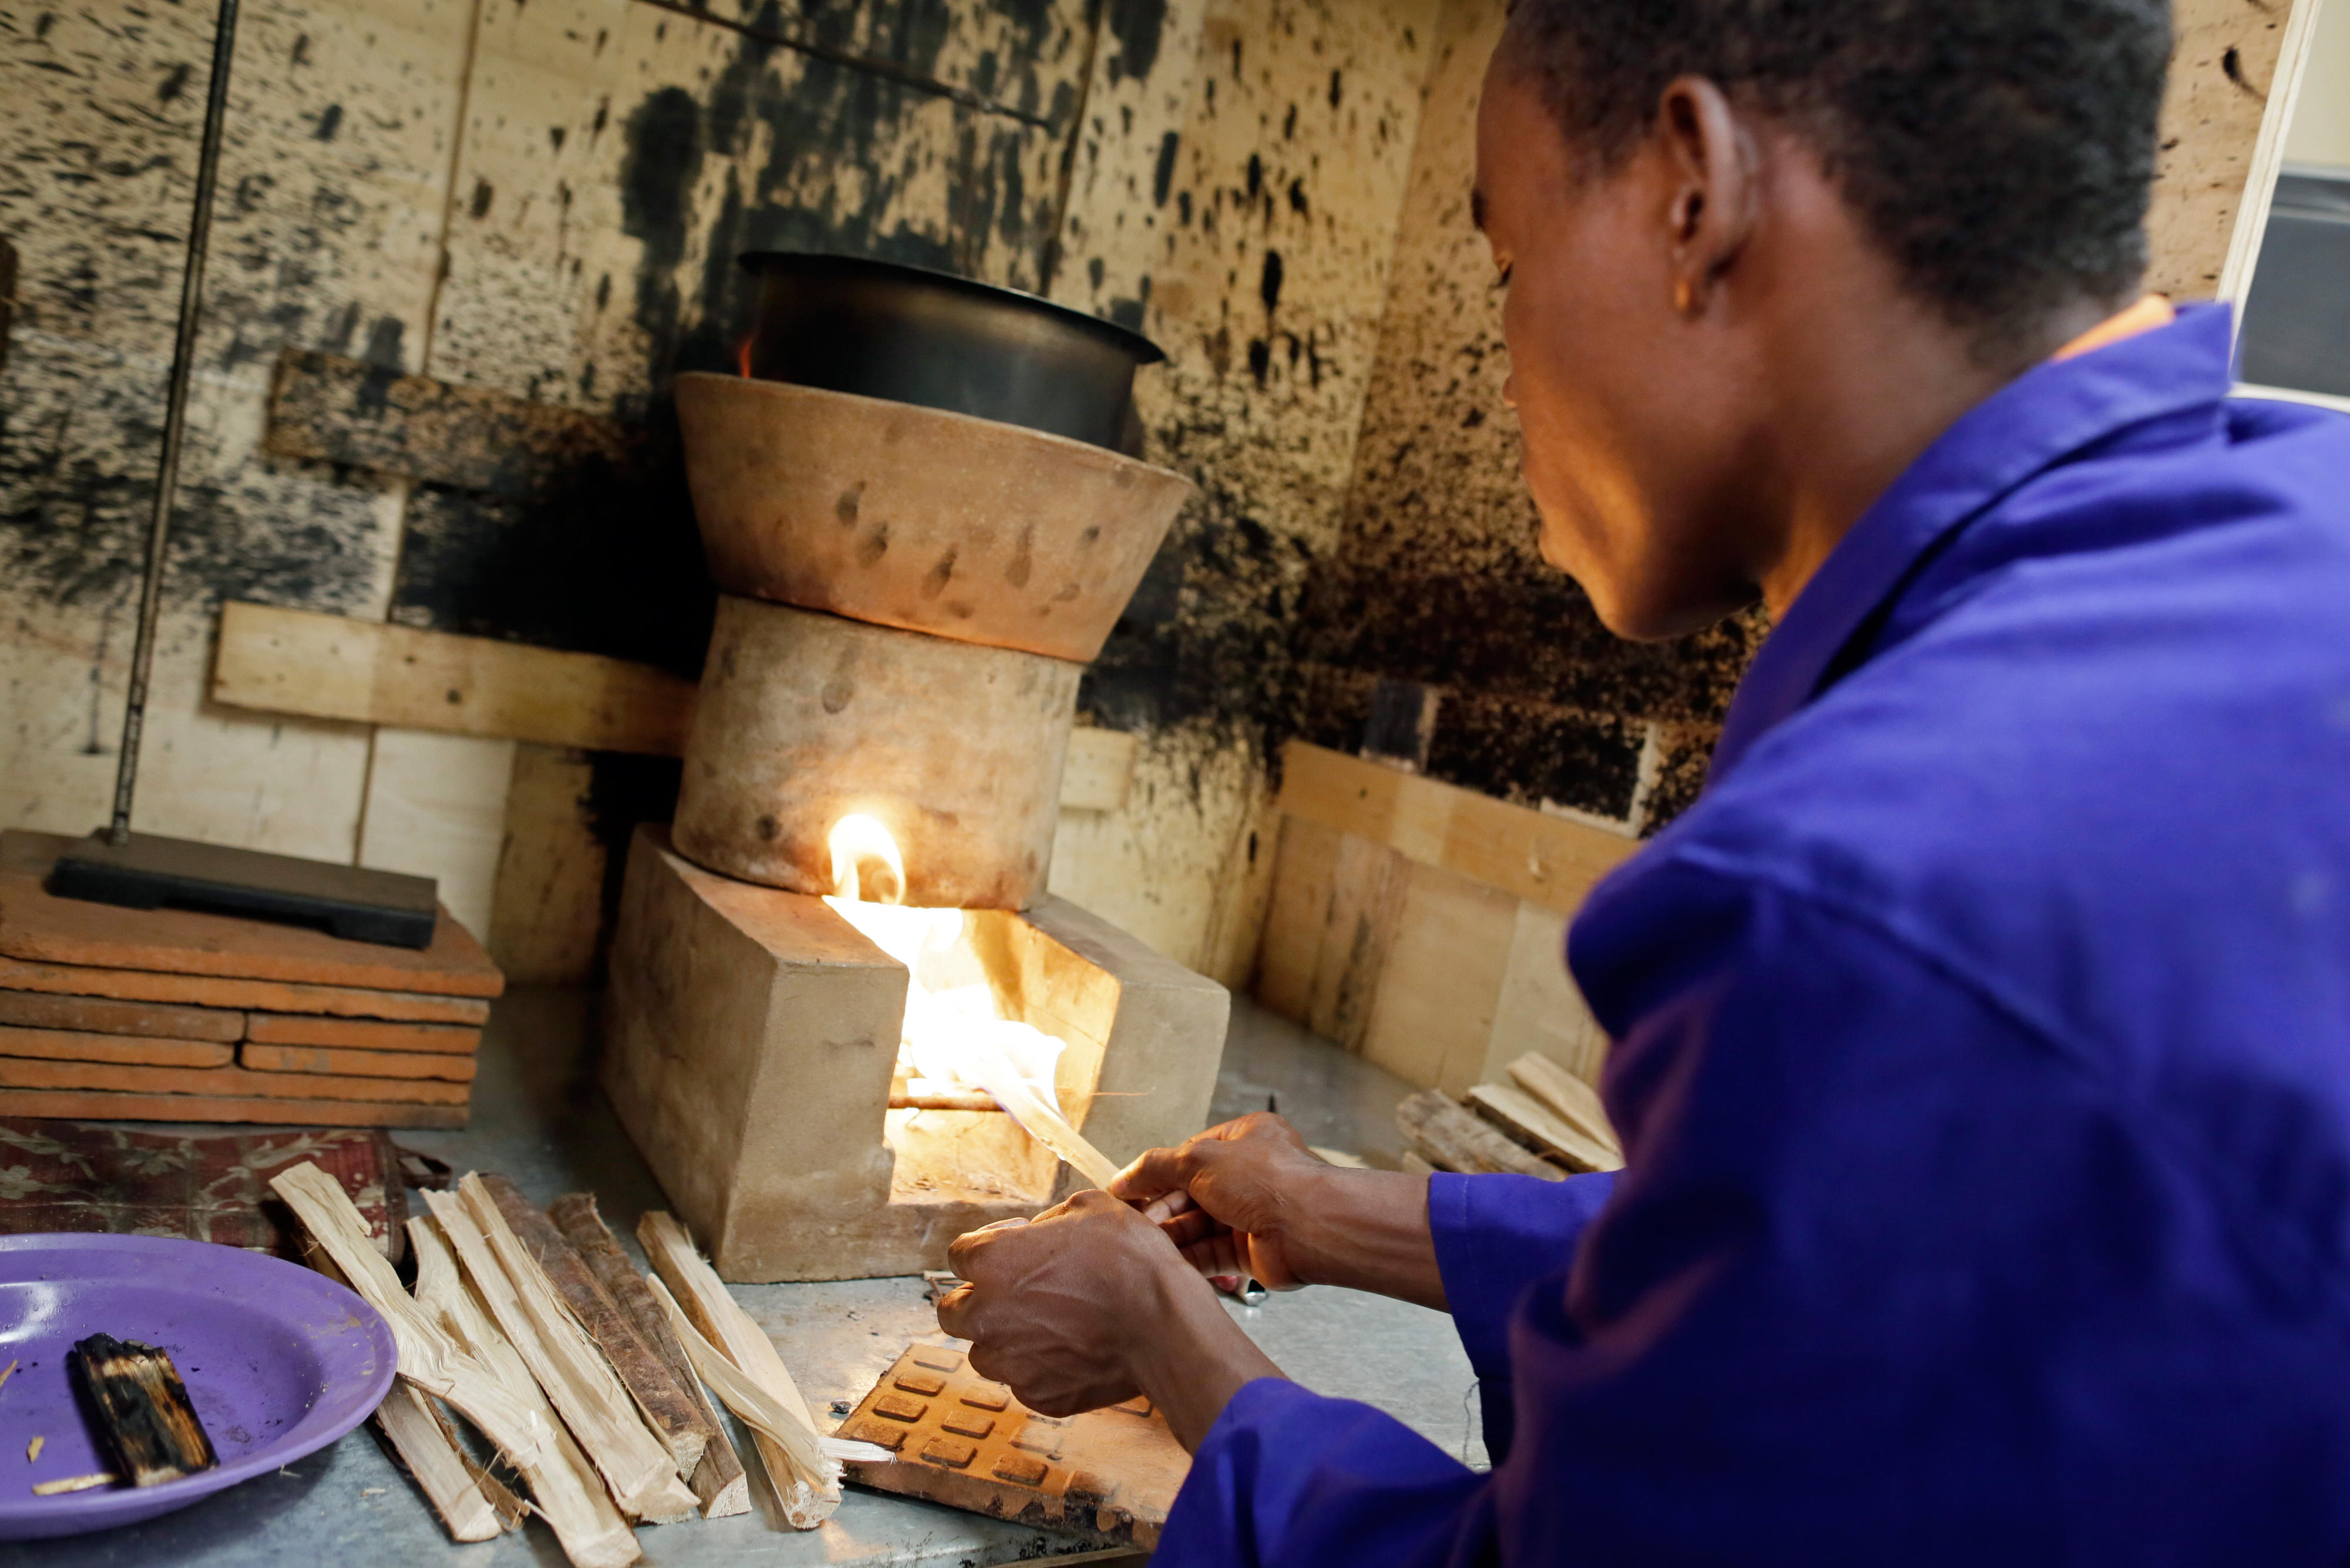 Researcher at the Centre of Research in Energy and Energy Conservation at Makerere University in Kampala, Uganda. Here, researchers are testing the energy efficiency of wood-burning stoves.